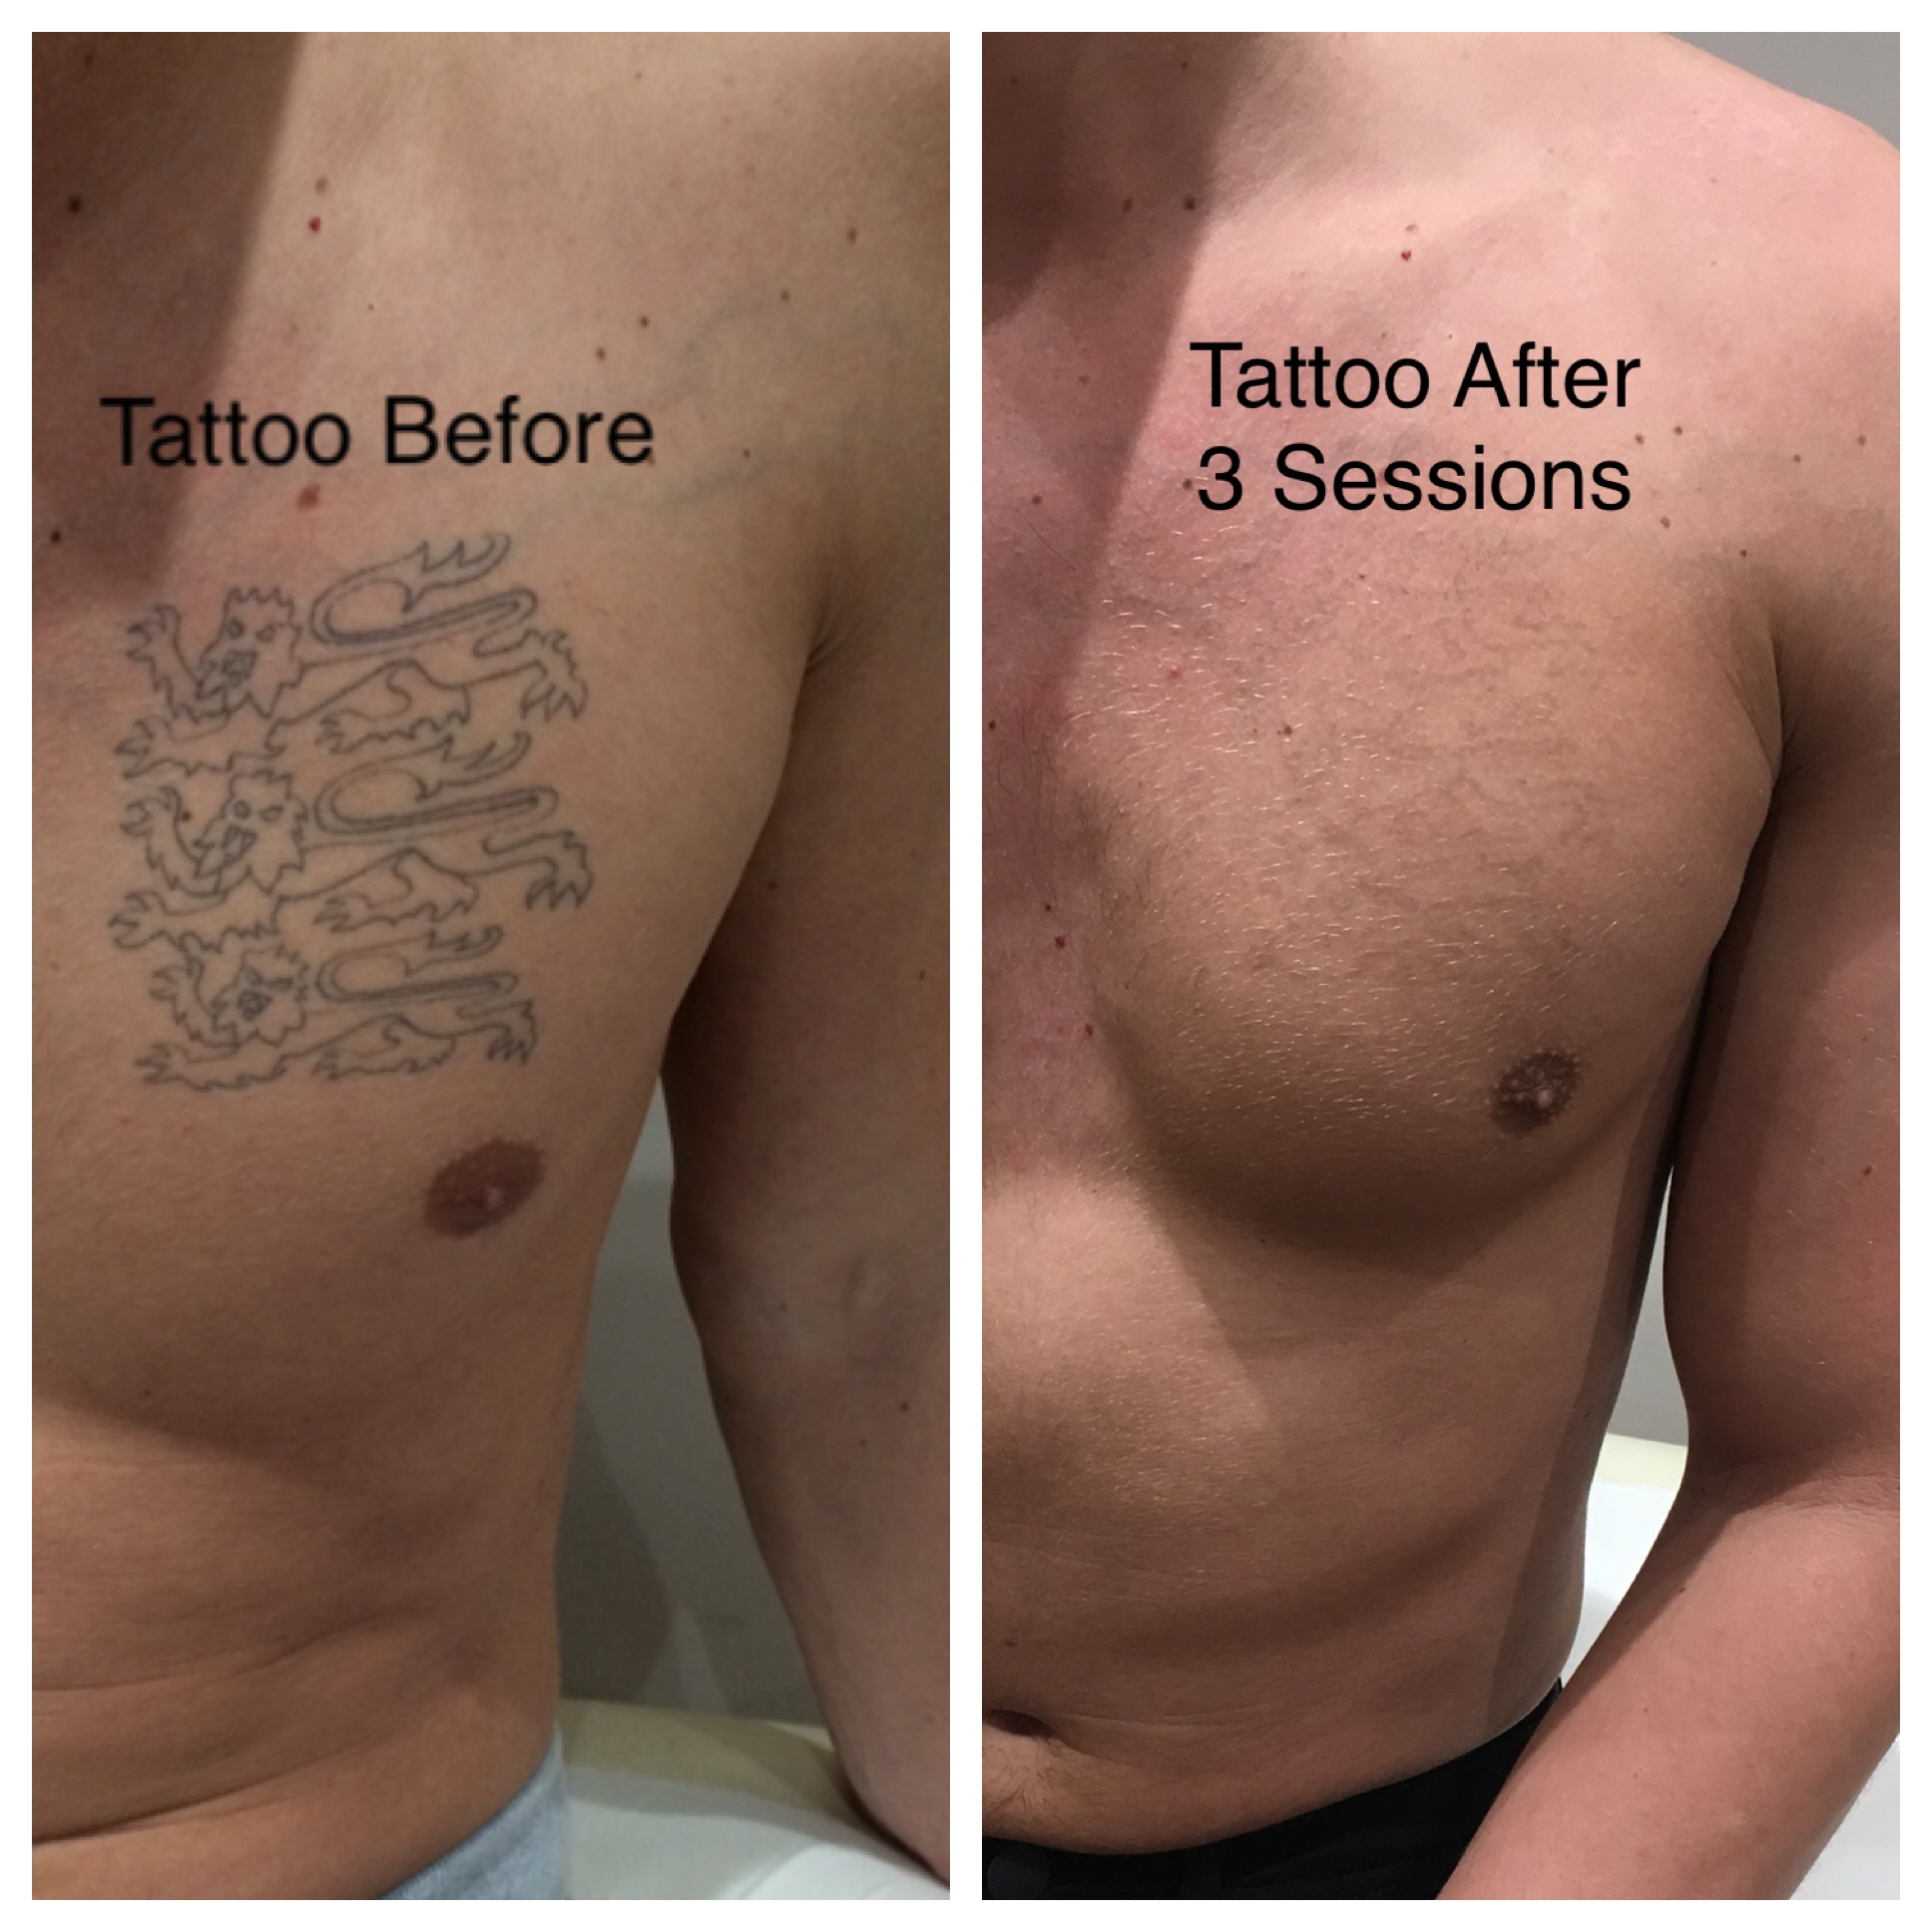 695c4e0da Tattoo Removal Treatment | Laser